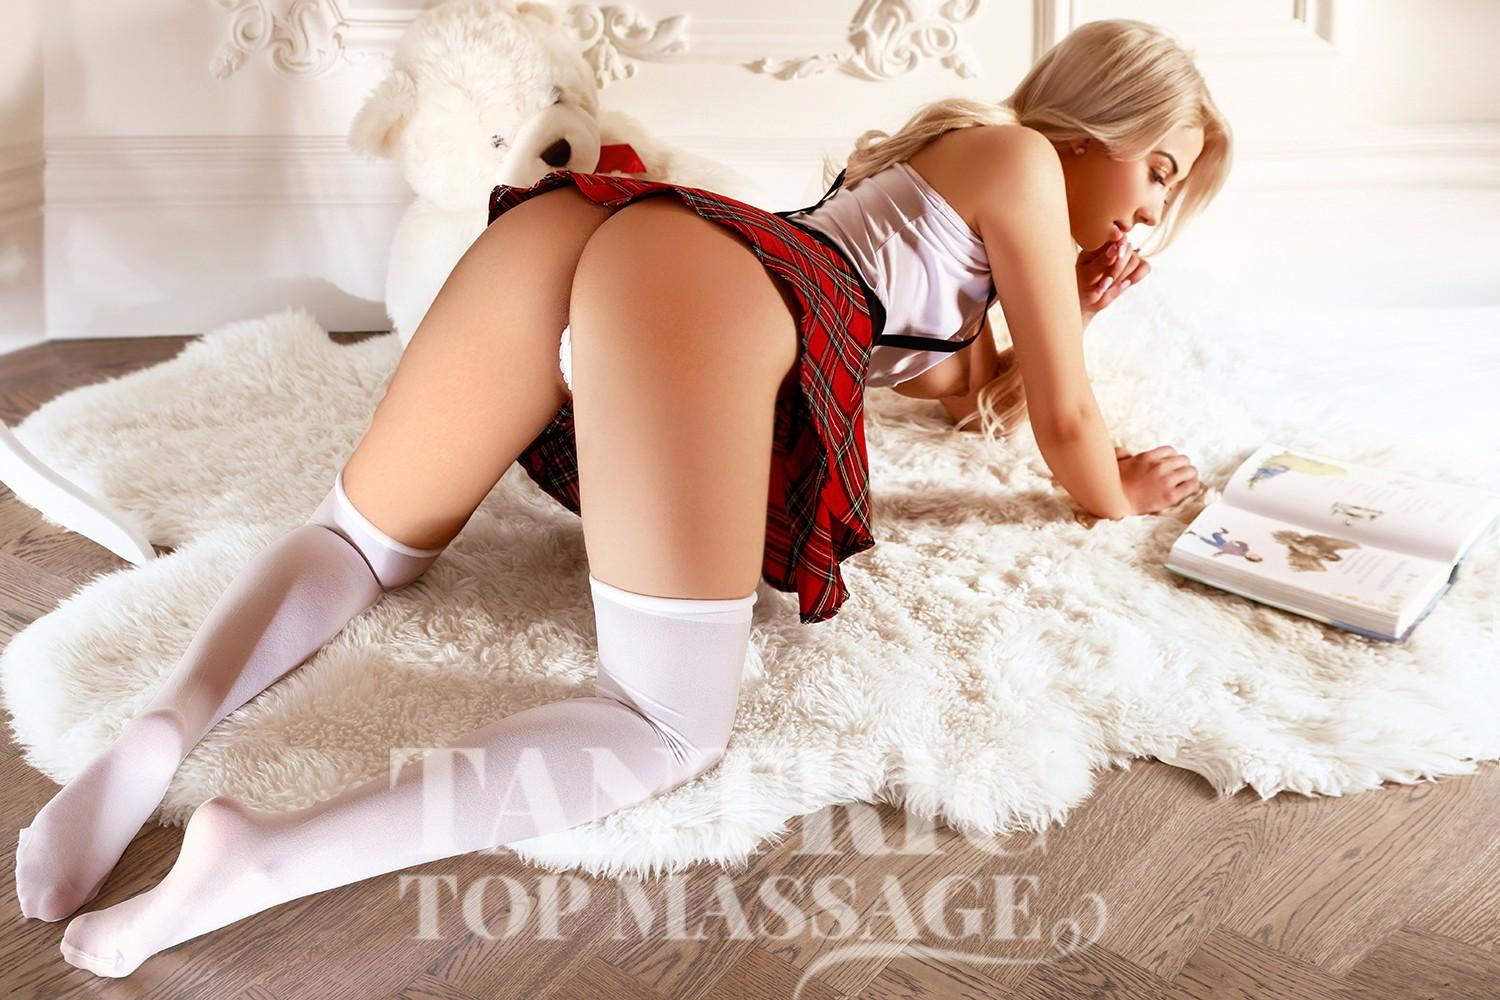 Cassy from Topsecret Escorts